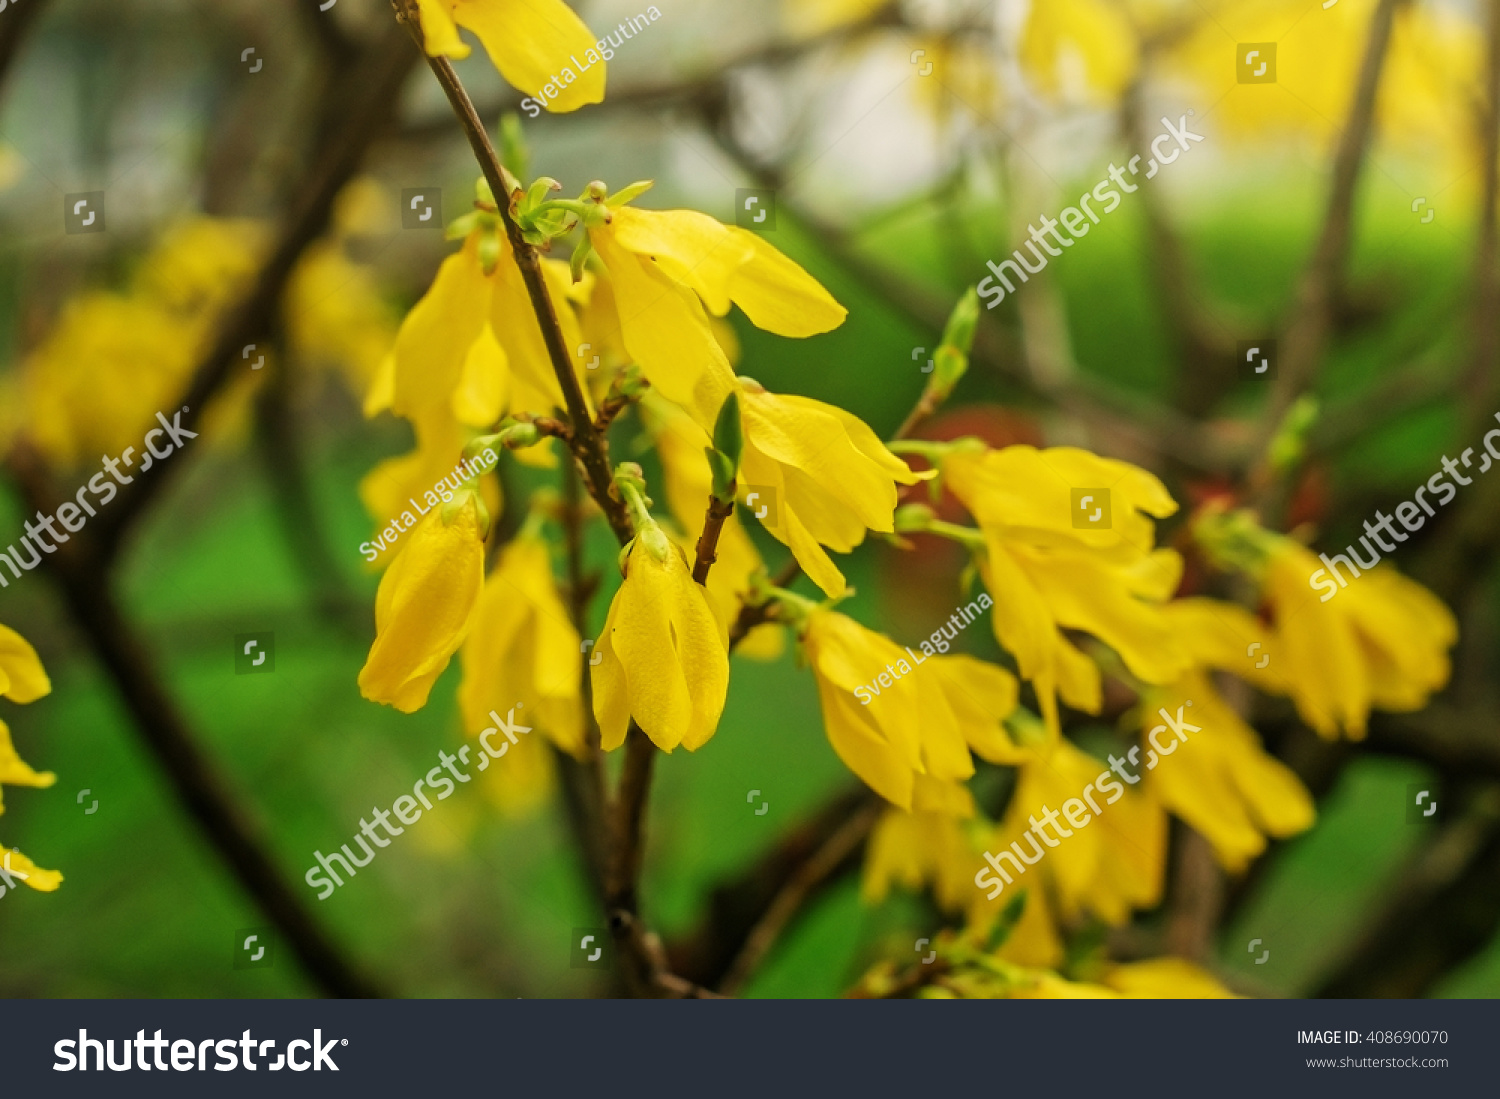 Flowering Bush In The Spring Yellow Flowers On Green Ez Canvas